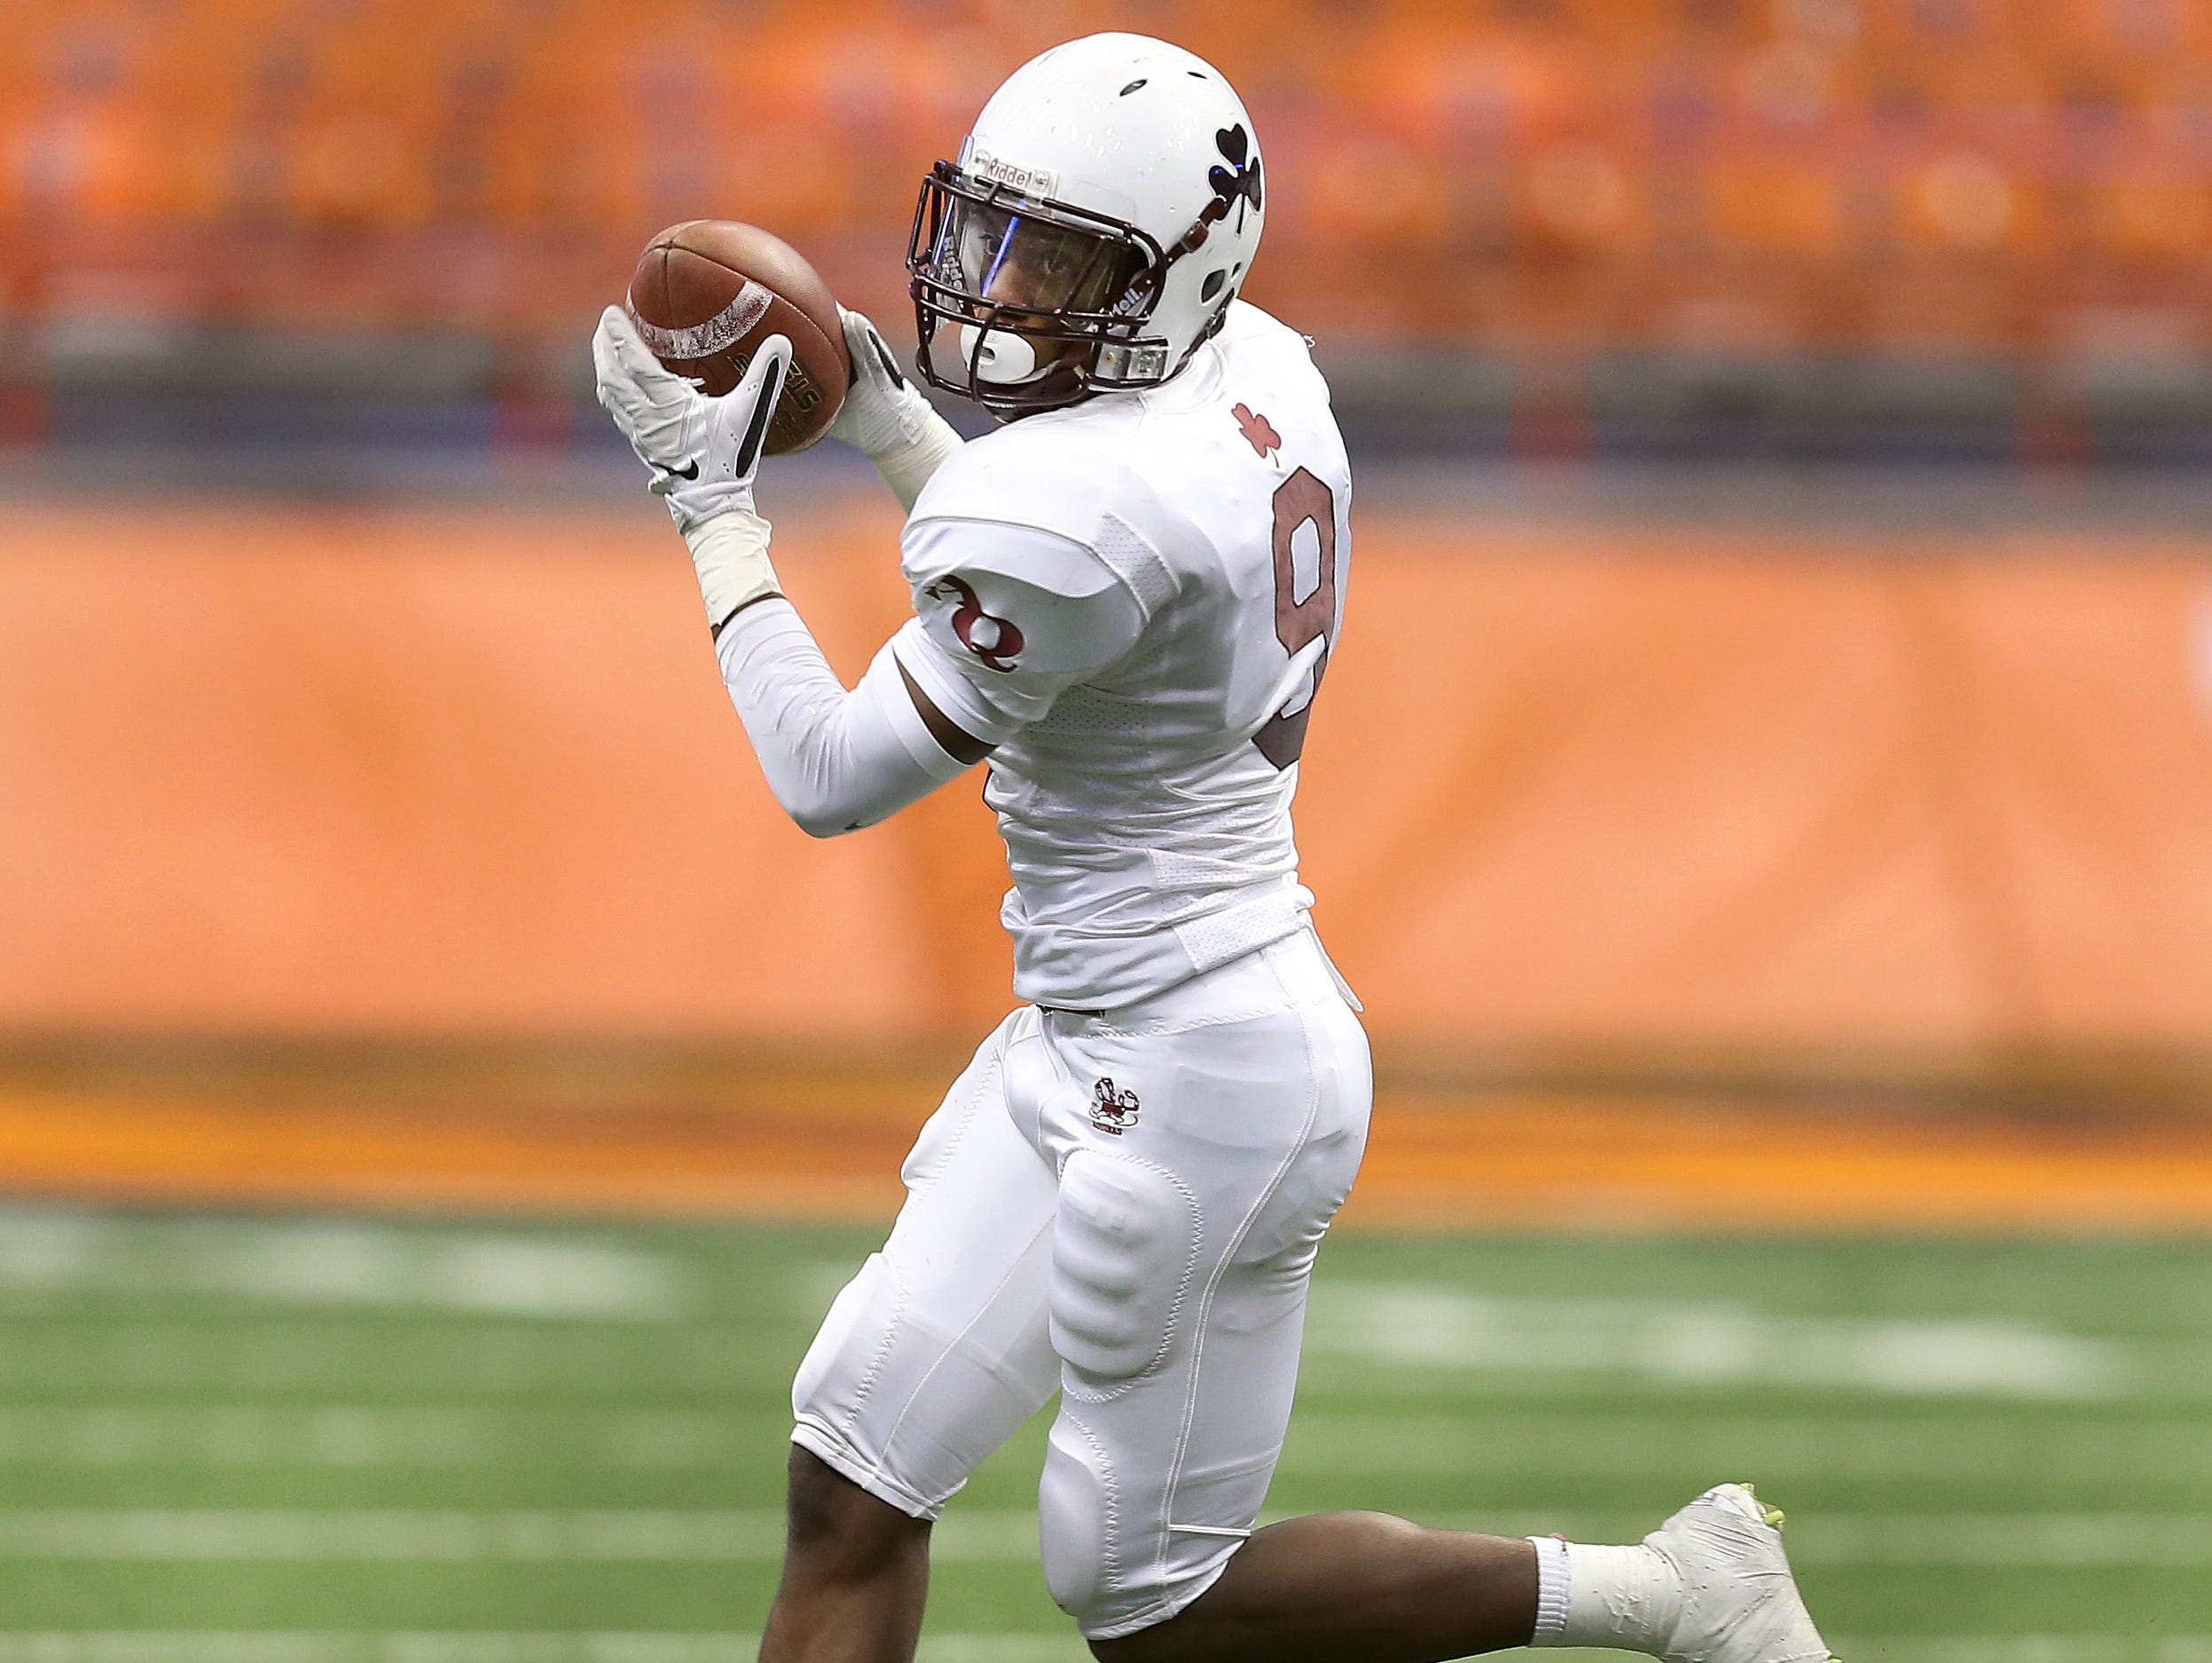 Aquinas' Earnest Edwards looks for running room after a catch.